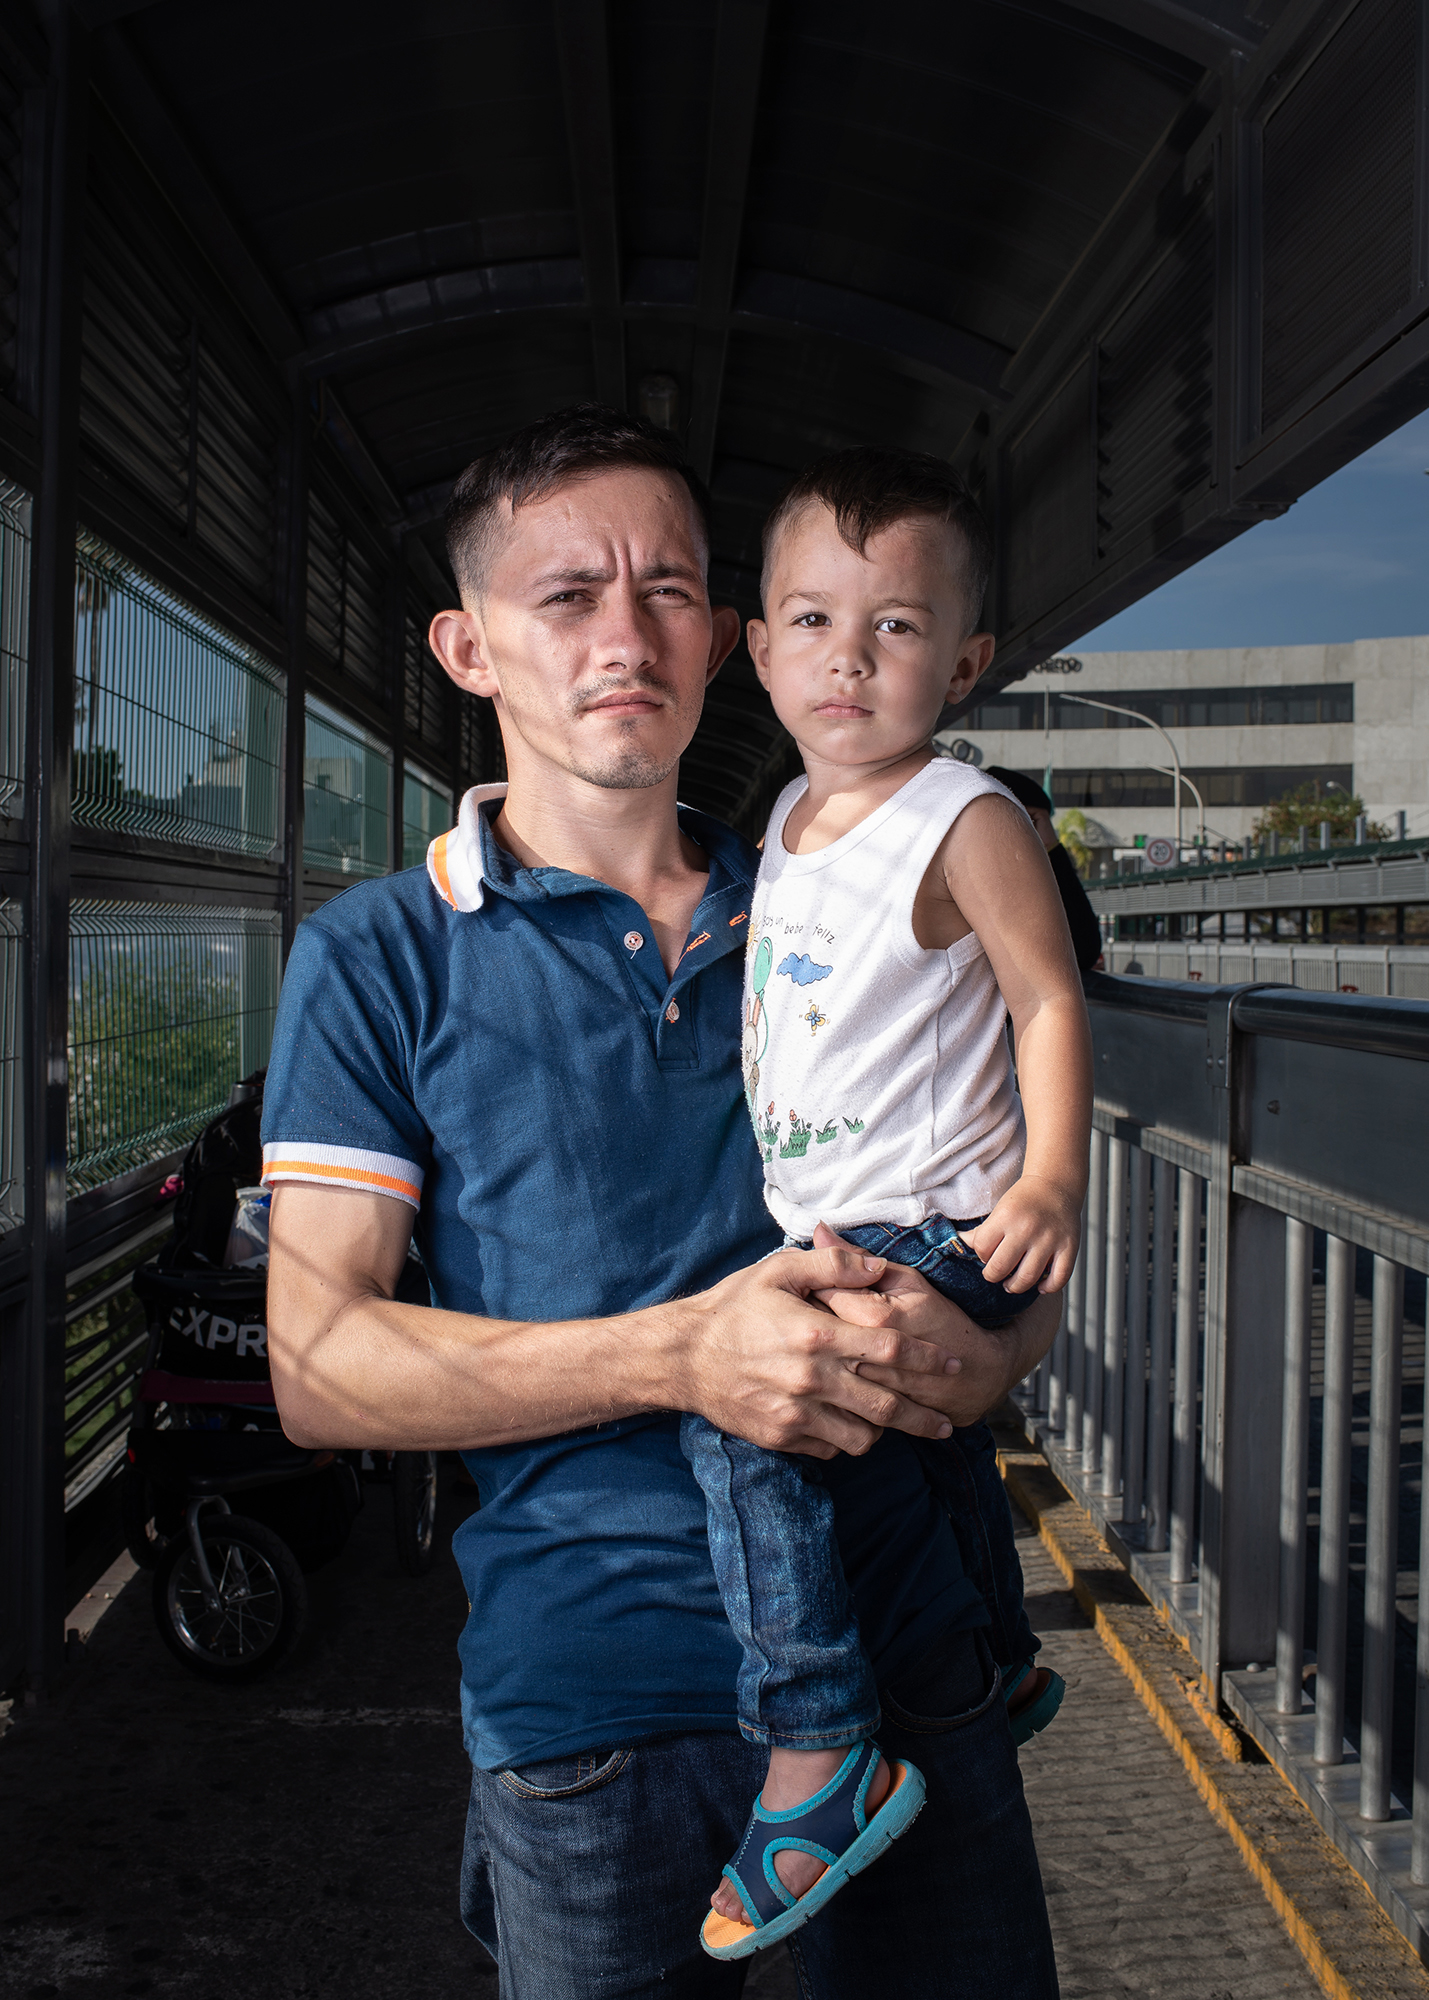 Portrait of Alfredo (26 years old) and his son Alex (1 year and 4 months), from Honduras at Laredo / Nuevo Laredo International Bridge. Alfredo decided to leave his homecountry due to the economic and social crisis it is facing. He approached the border to ask for asylum and start a new and better life. Laredo / Nuevo Laredo International Bridge. June 23rd, 2018. Photographer: Luján Agusti. (Model Release)